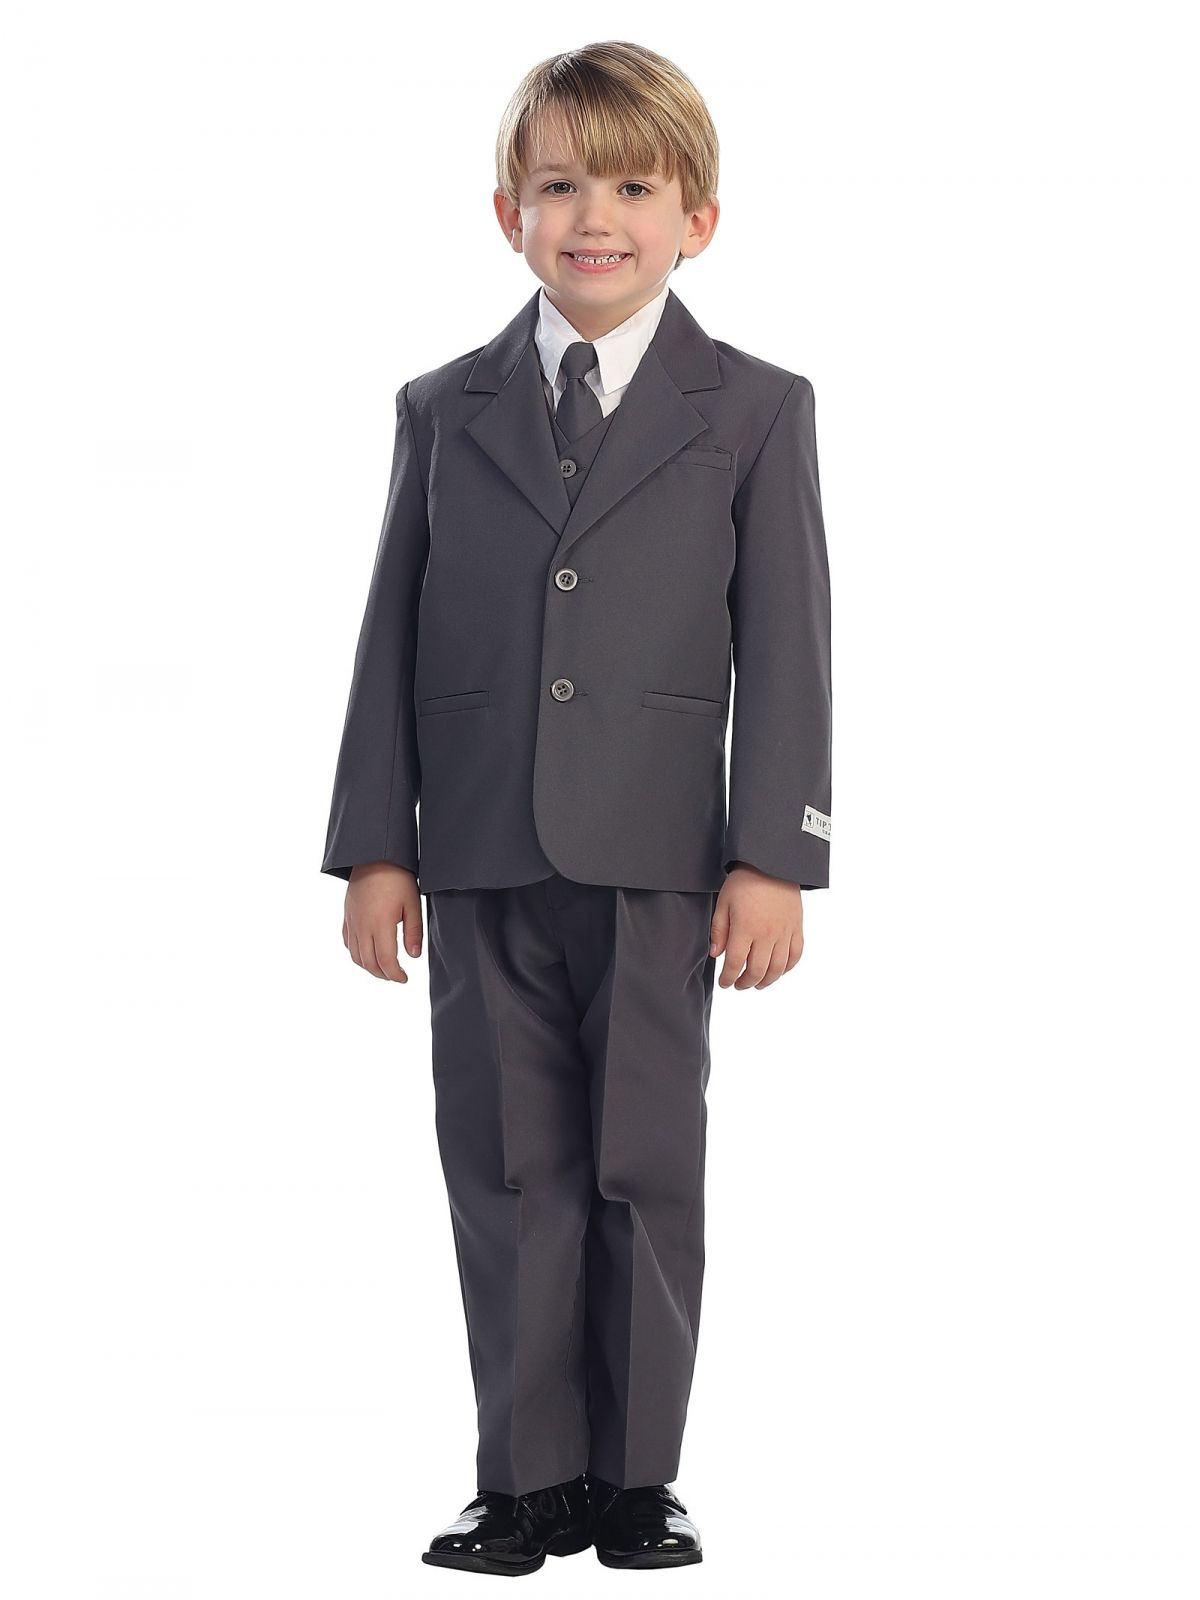 5de6e89b02f5 You receive 5 pieces including: 2 button Jacket, Pants, Long sleeved white  shirt, black button up vest, and cute black tie. Instantly turns any wild  child ...